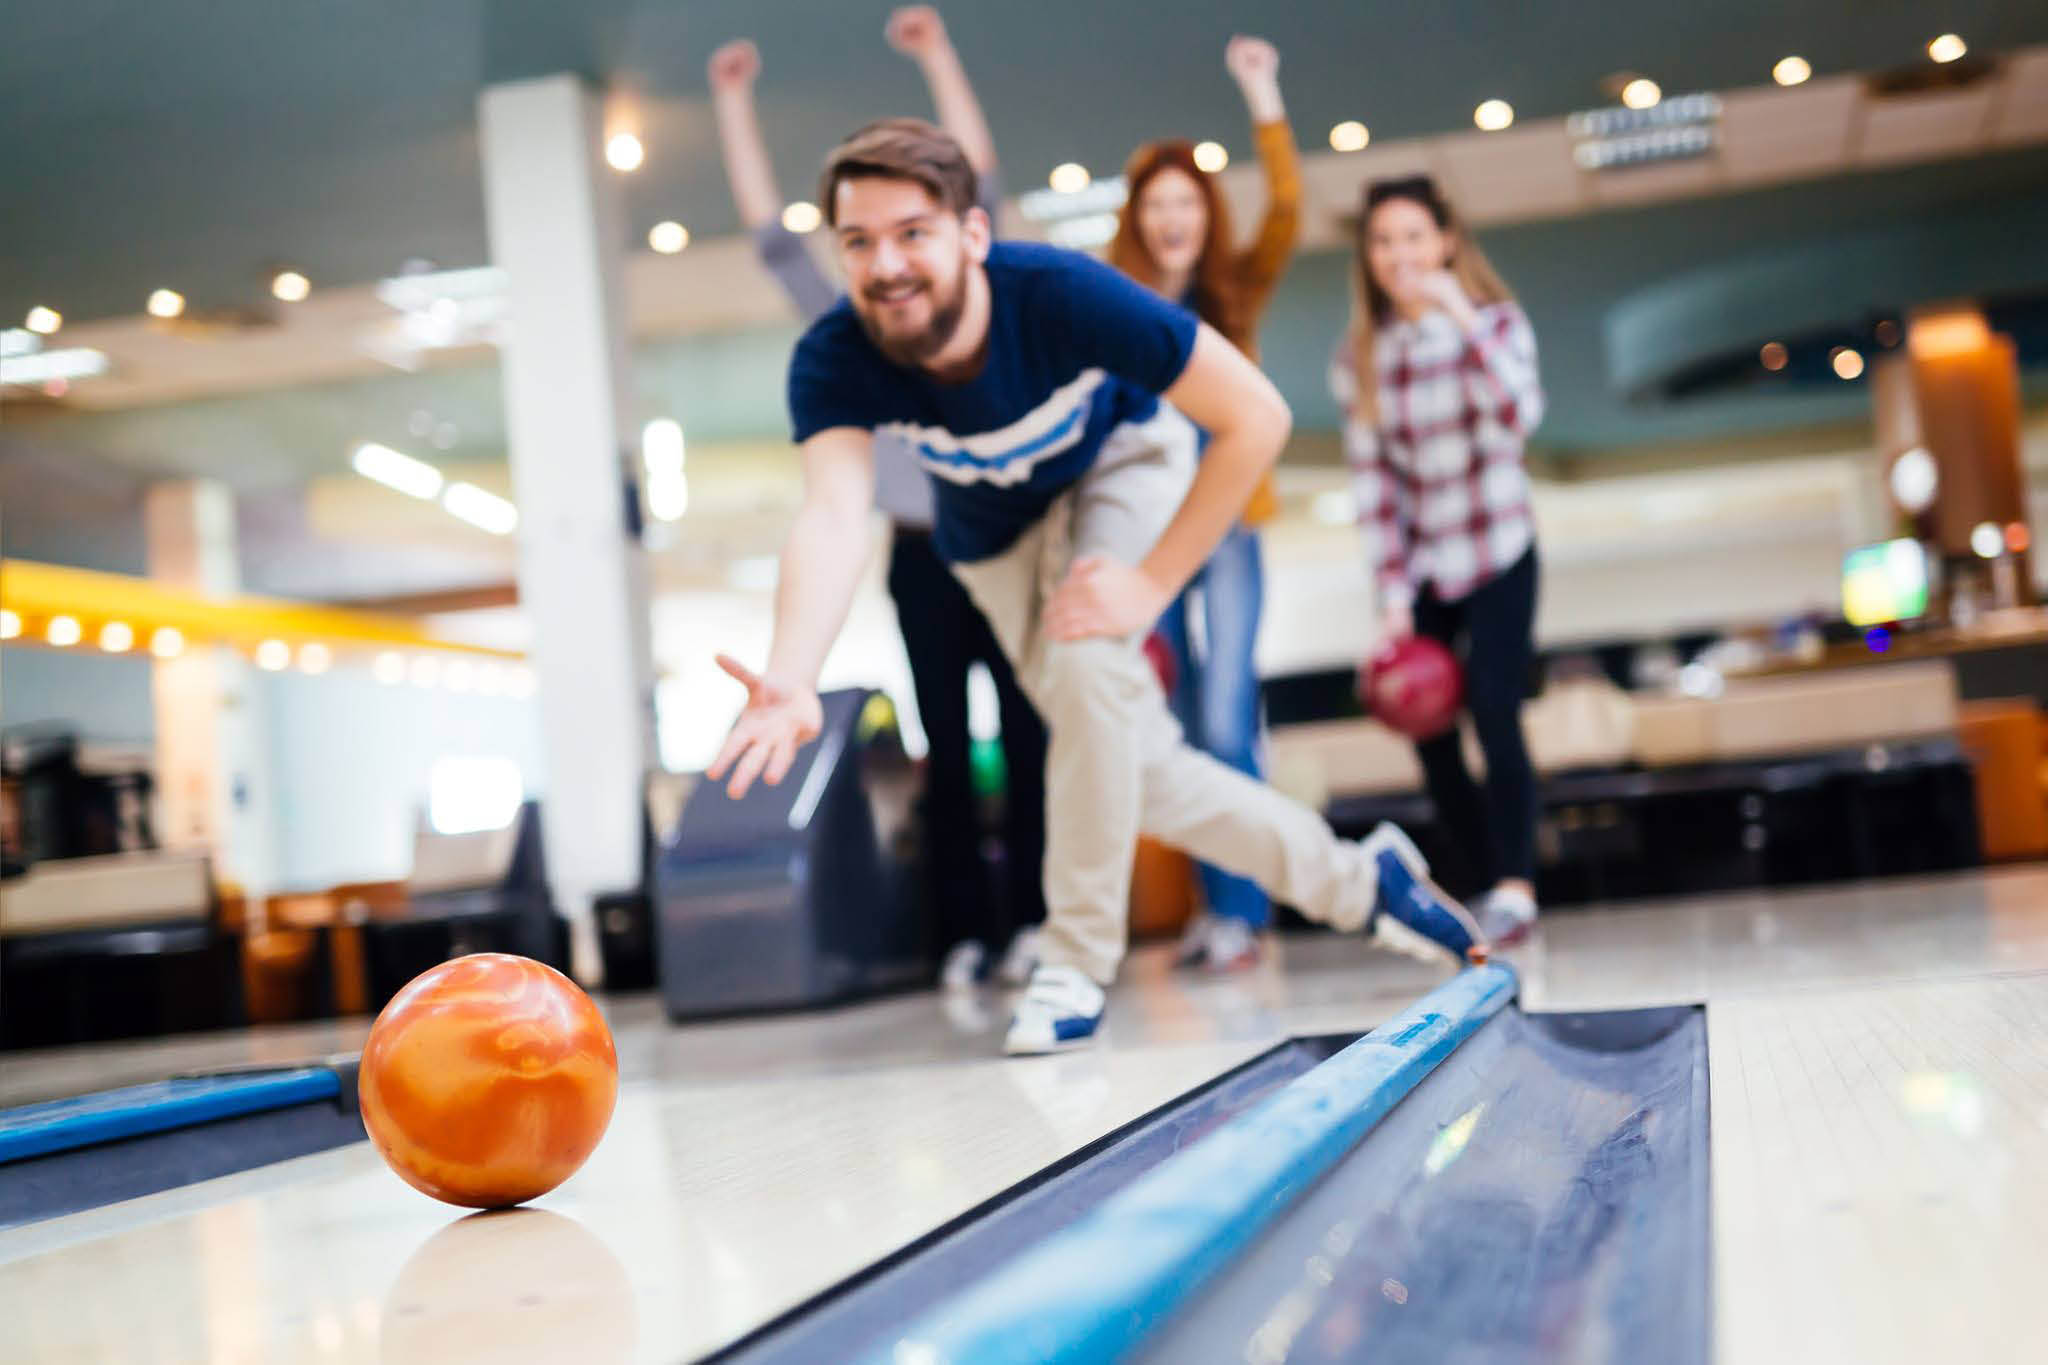 Enjoy a great time bowling at Evergreen Lanes in Everett, WA - bowl with friends - bowl with family - plan a bowling party at Evergreen Lanes